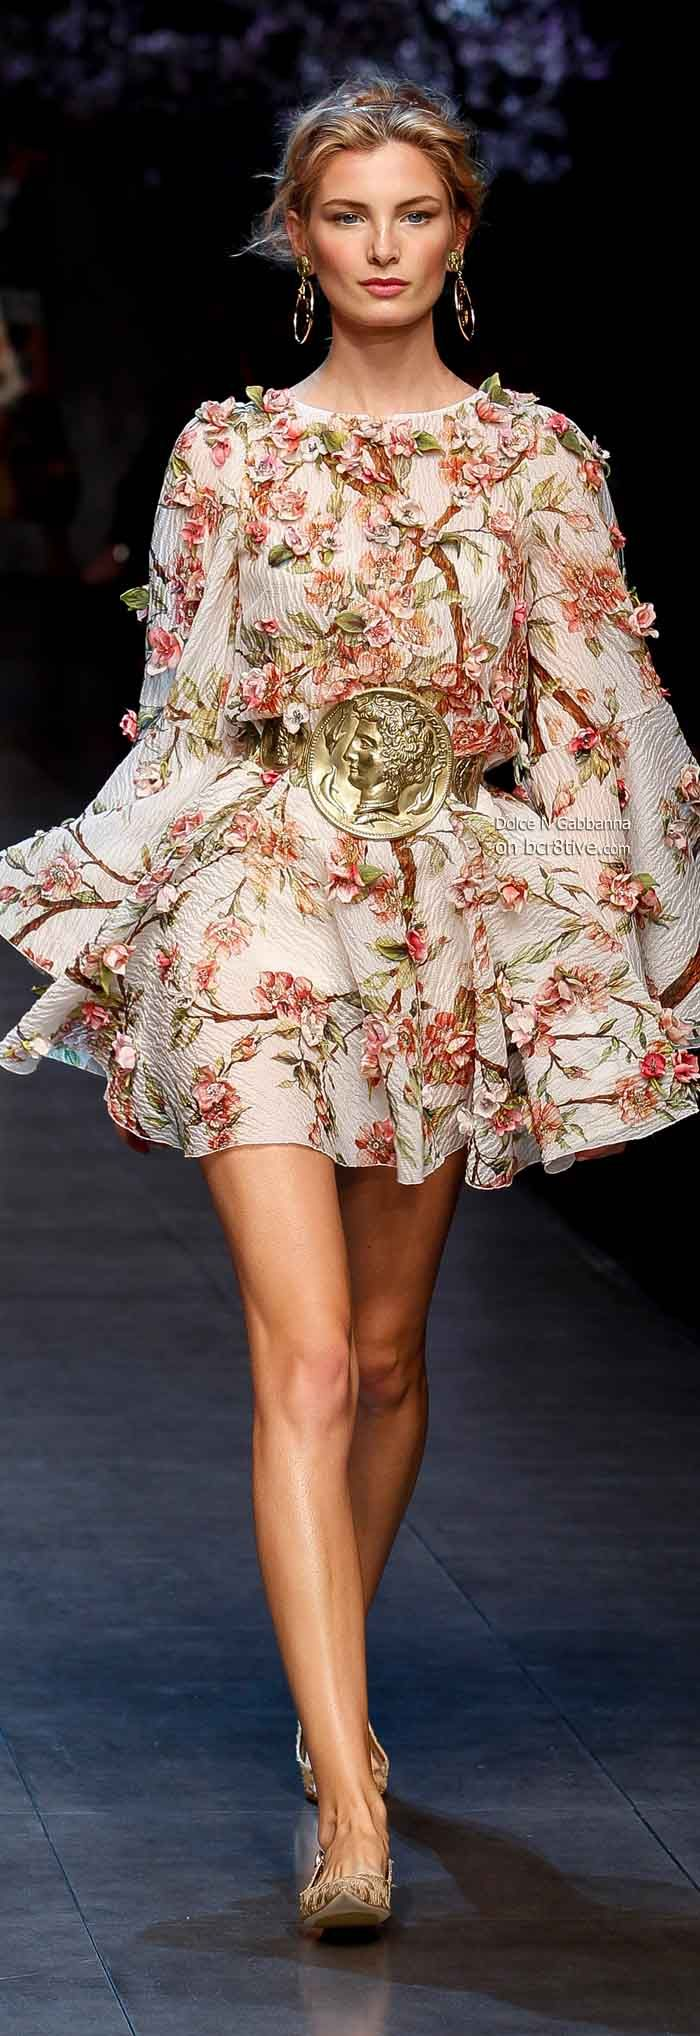 Dolce & Gabbana Spring 2014 Floral Inspiration - Feminine - Fun - Flirty - I adore this Summer dress look - (fashion style runway inspiration ) http://karinaporushkevich.com